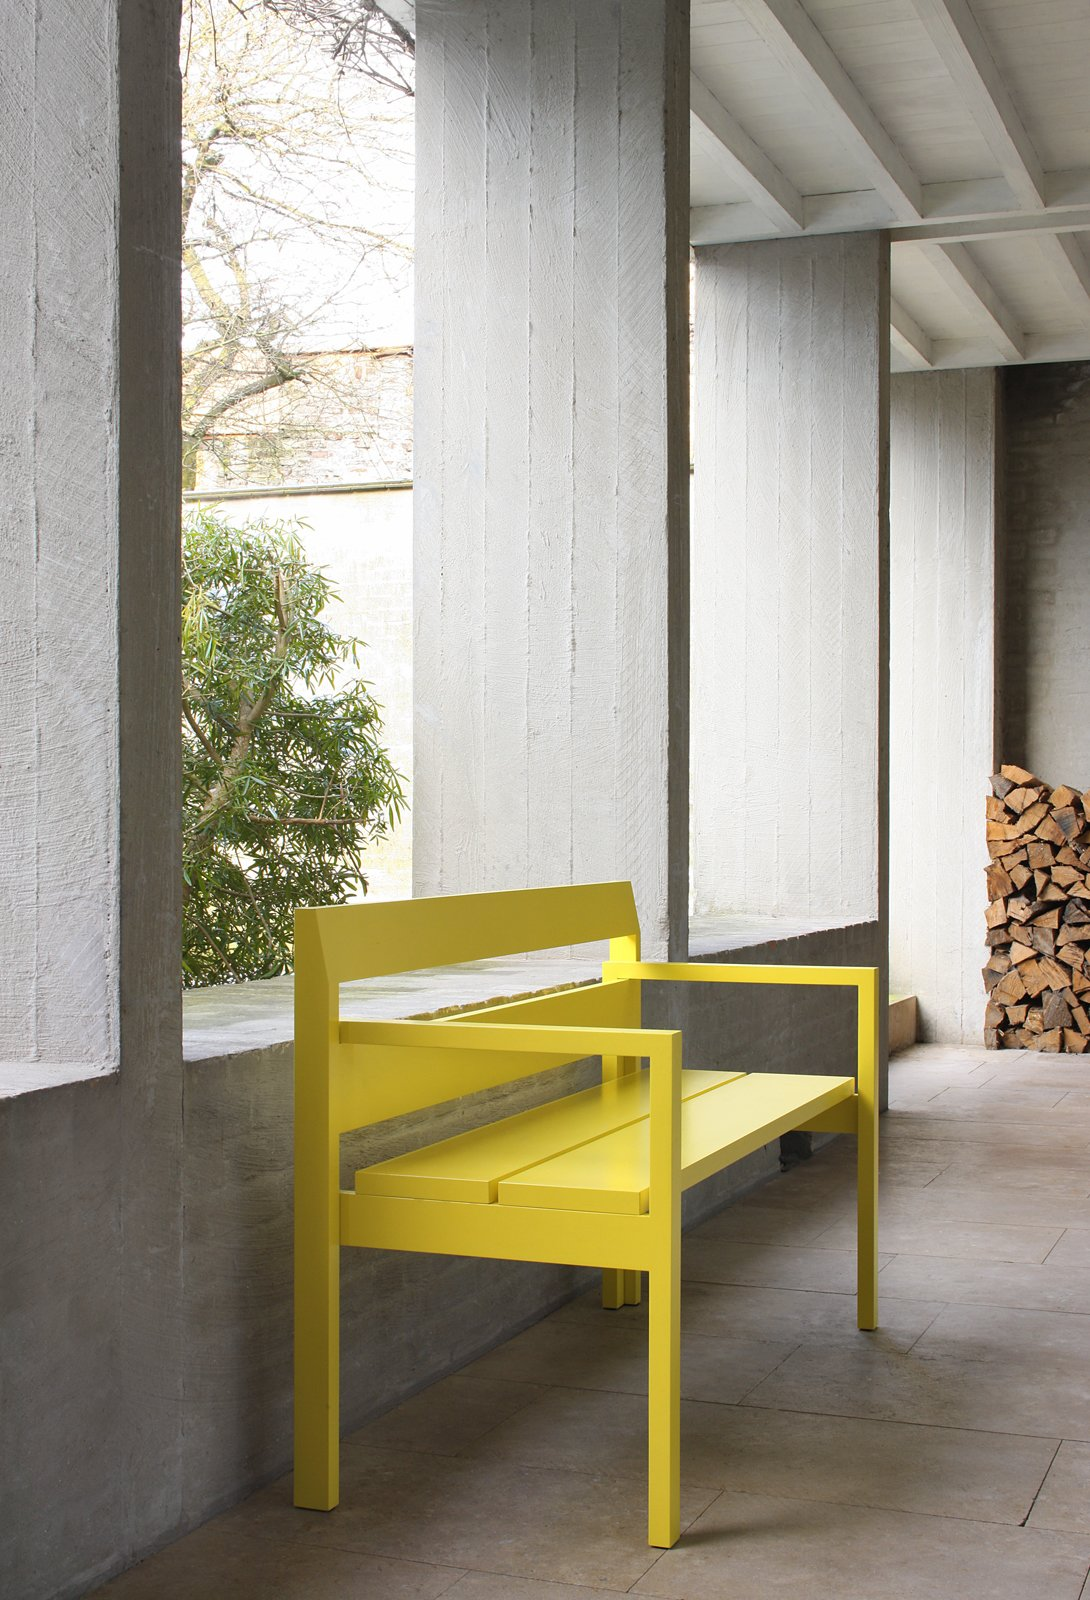 VMM Bench by Marc Supply and Anneli Lahtua: We like the sunny splash of color this bench adds to any space. Photo by Filip Dujardin  Photo 15 of 25 in 25 Bold Ways to Decorate with Yellow from Web Shop of the Day: Labt